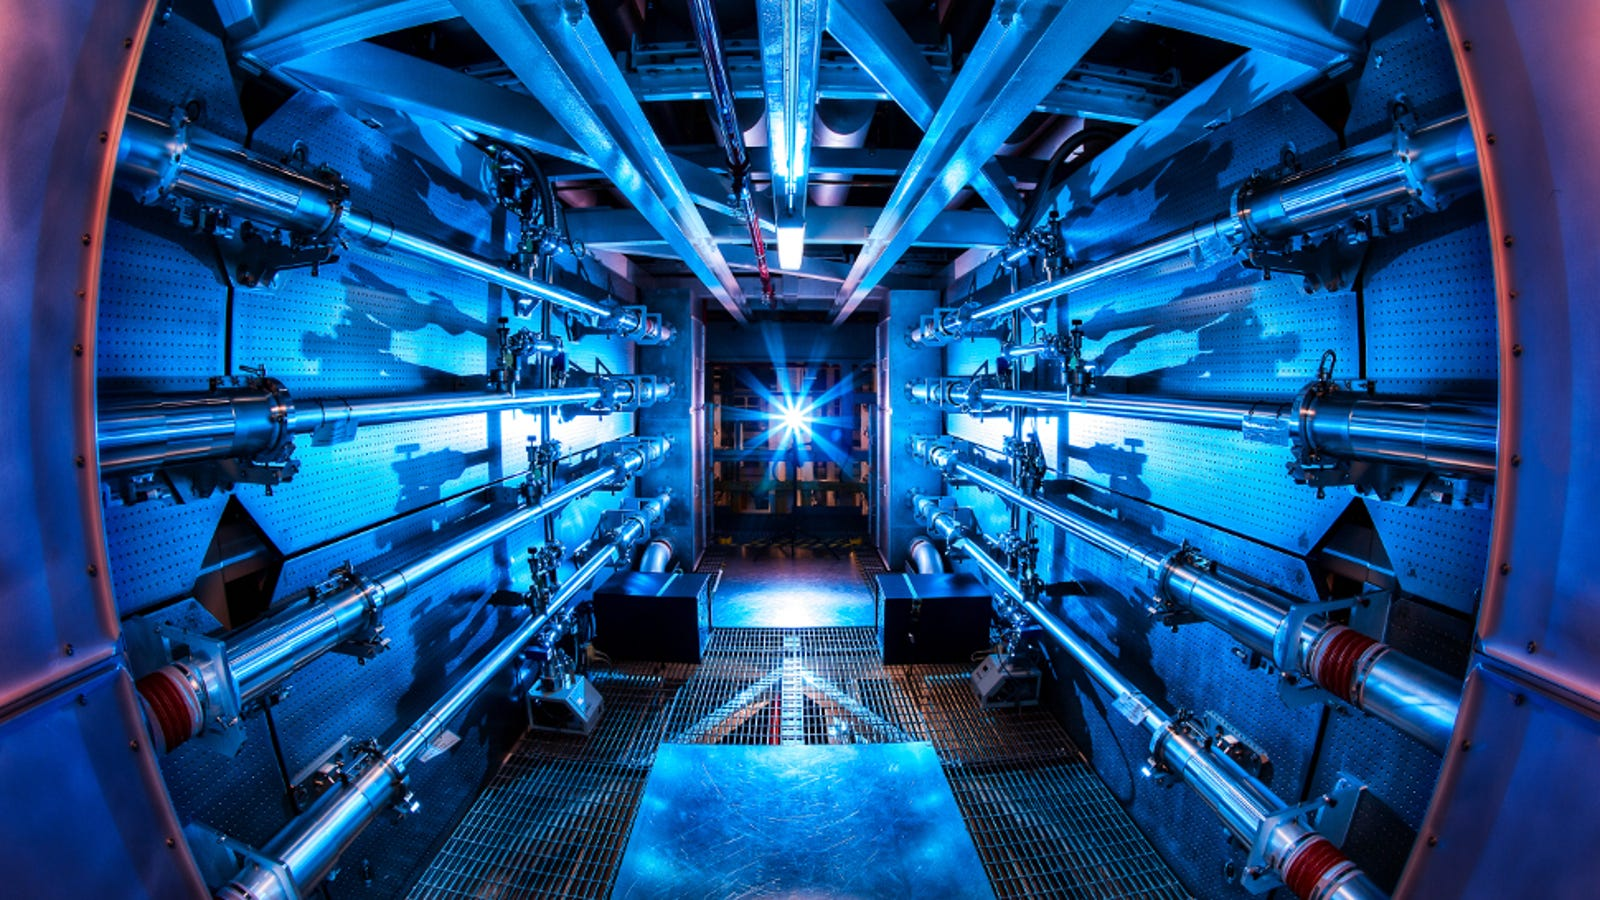 Breakthrough: The world's first net-positive nuclear fusion reaction